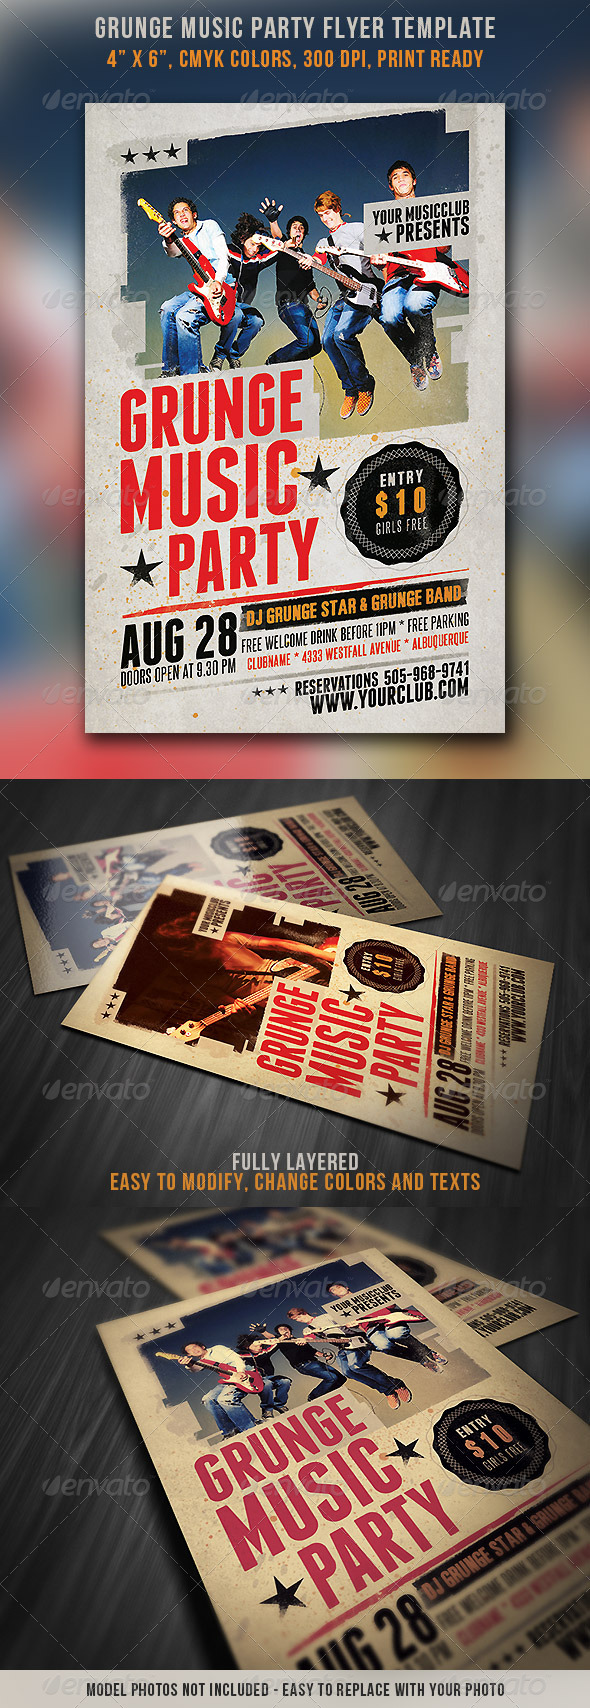 GraphicRiver Grunge Music Party Flyer 4532196